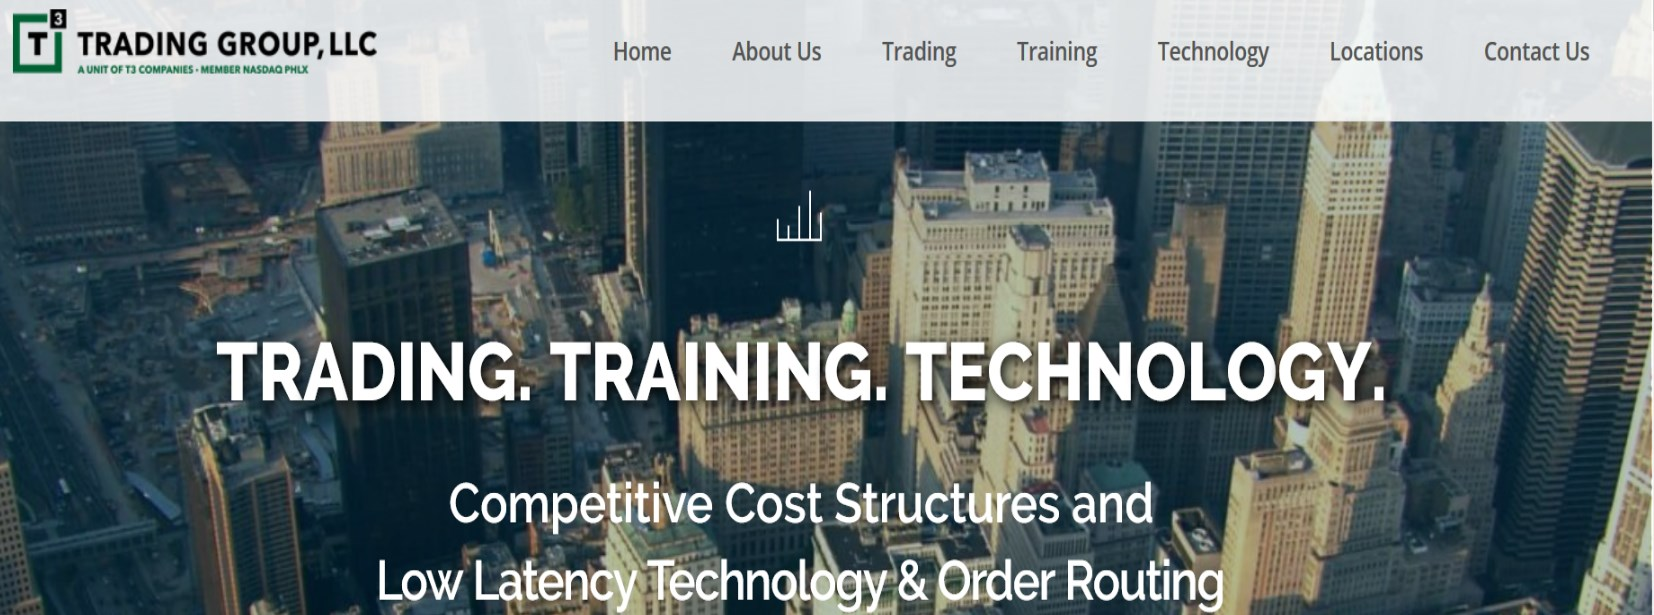 t3 trading group website